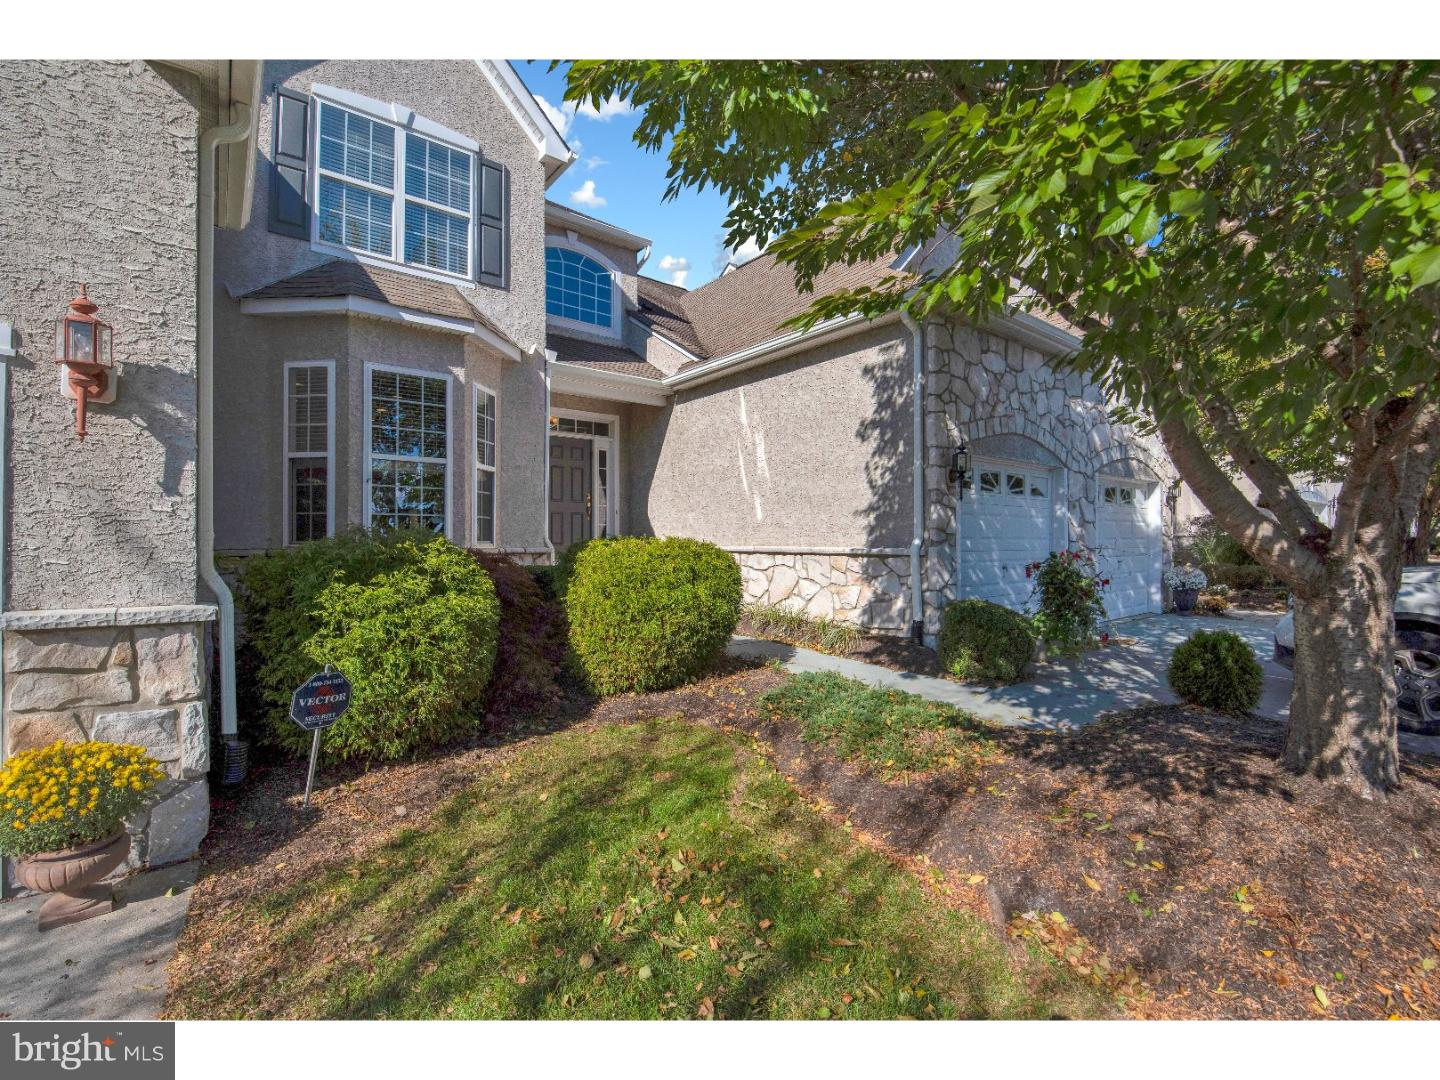 19 VAN ARTSDALEN DR, WASHINGTON CROSSING, PA